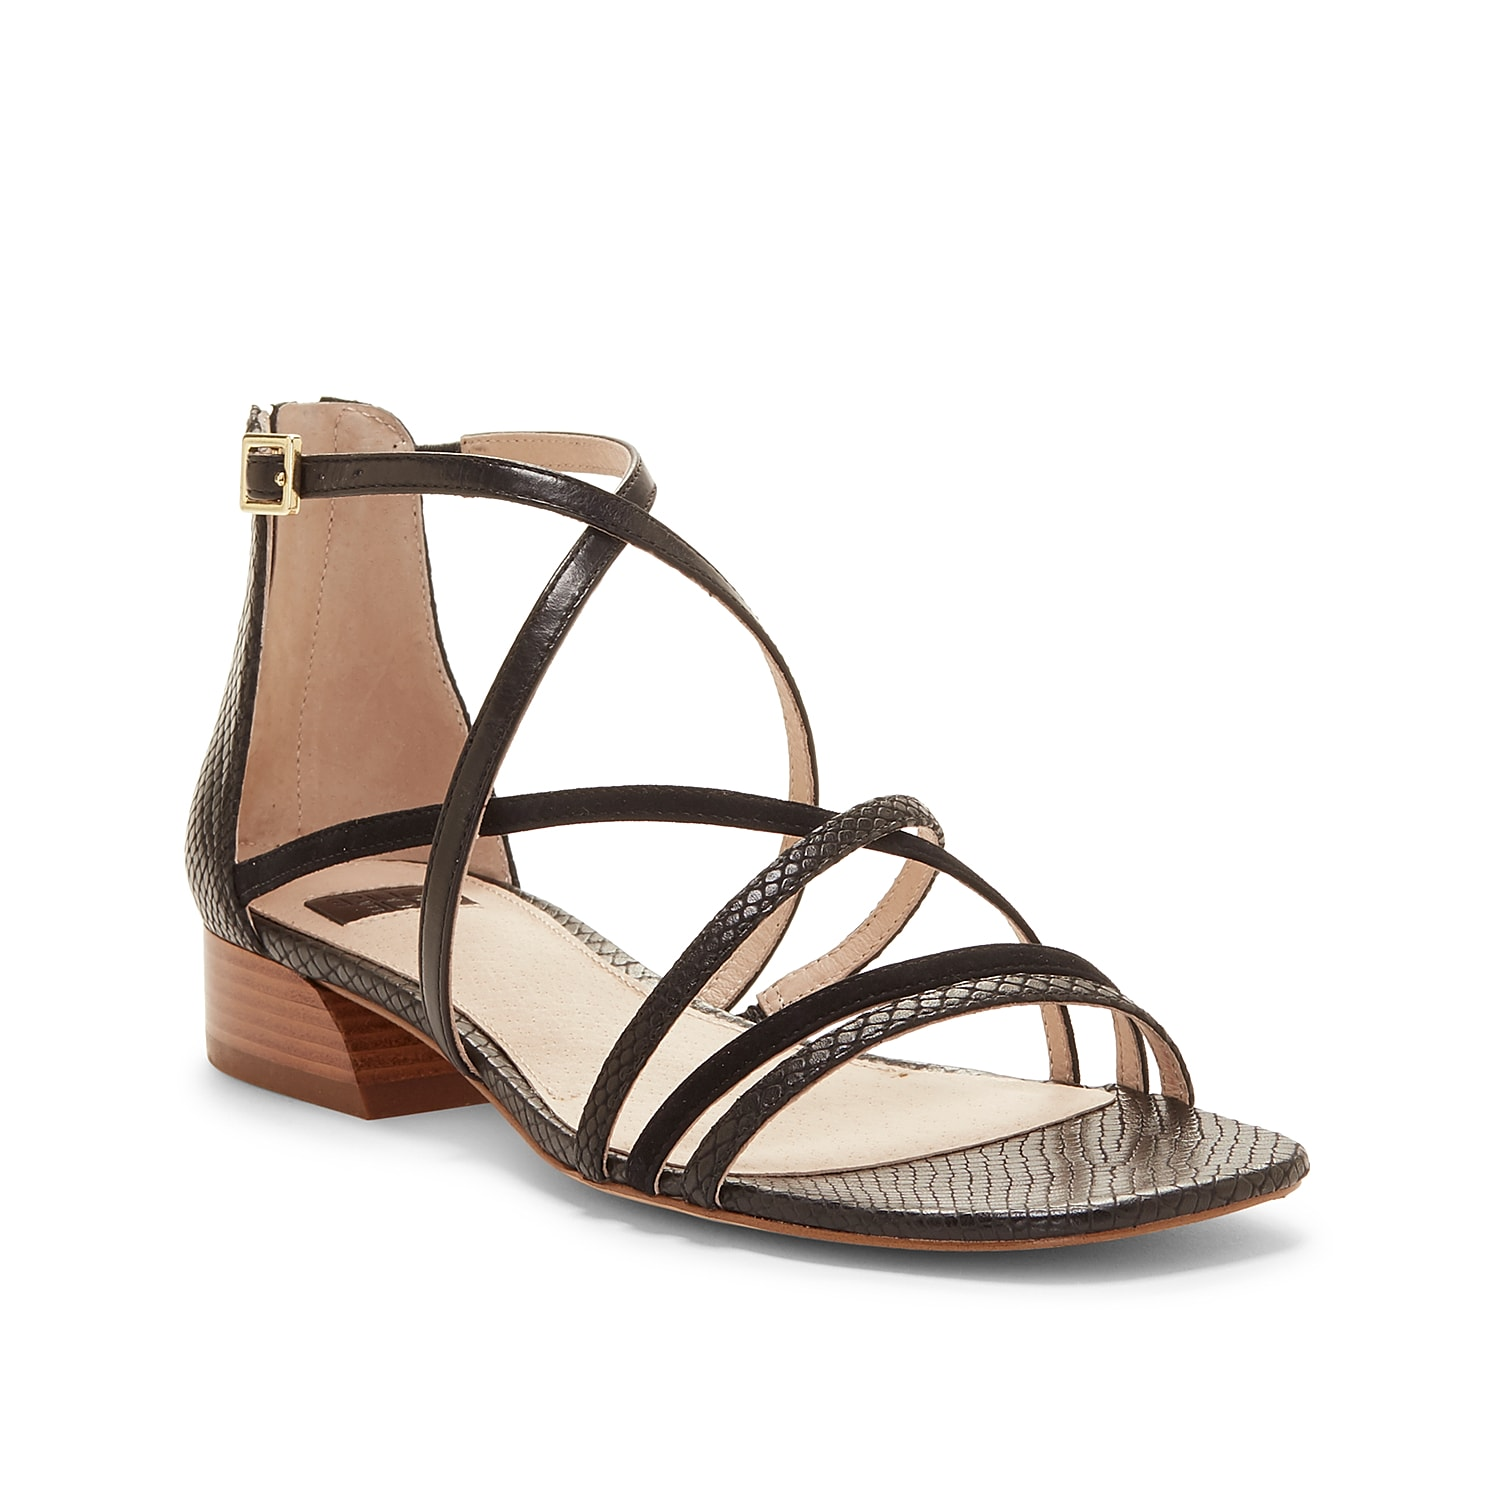 Complement any warm weather look with the Eleri sandal from Louise Et Cie. This leather pair features delicate straps with a squared off toe for trendy appeal.